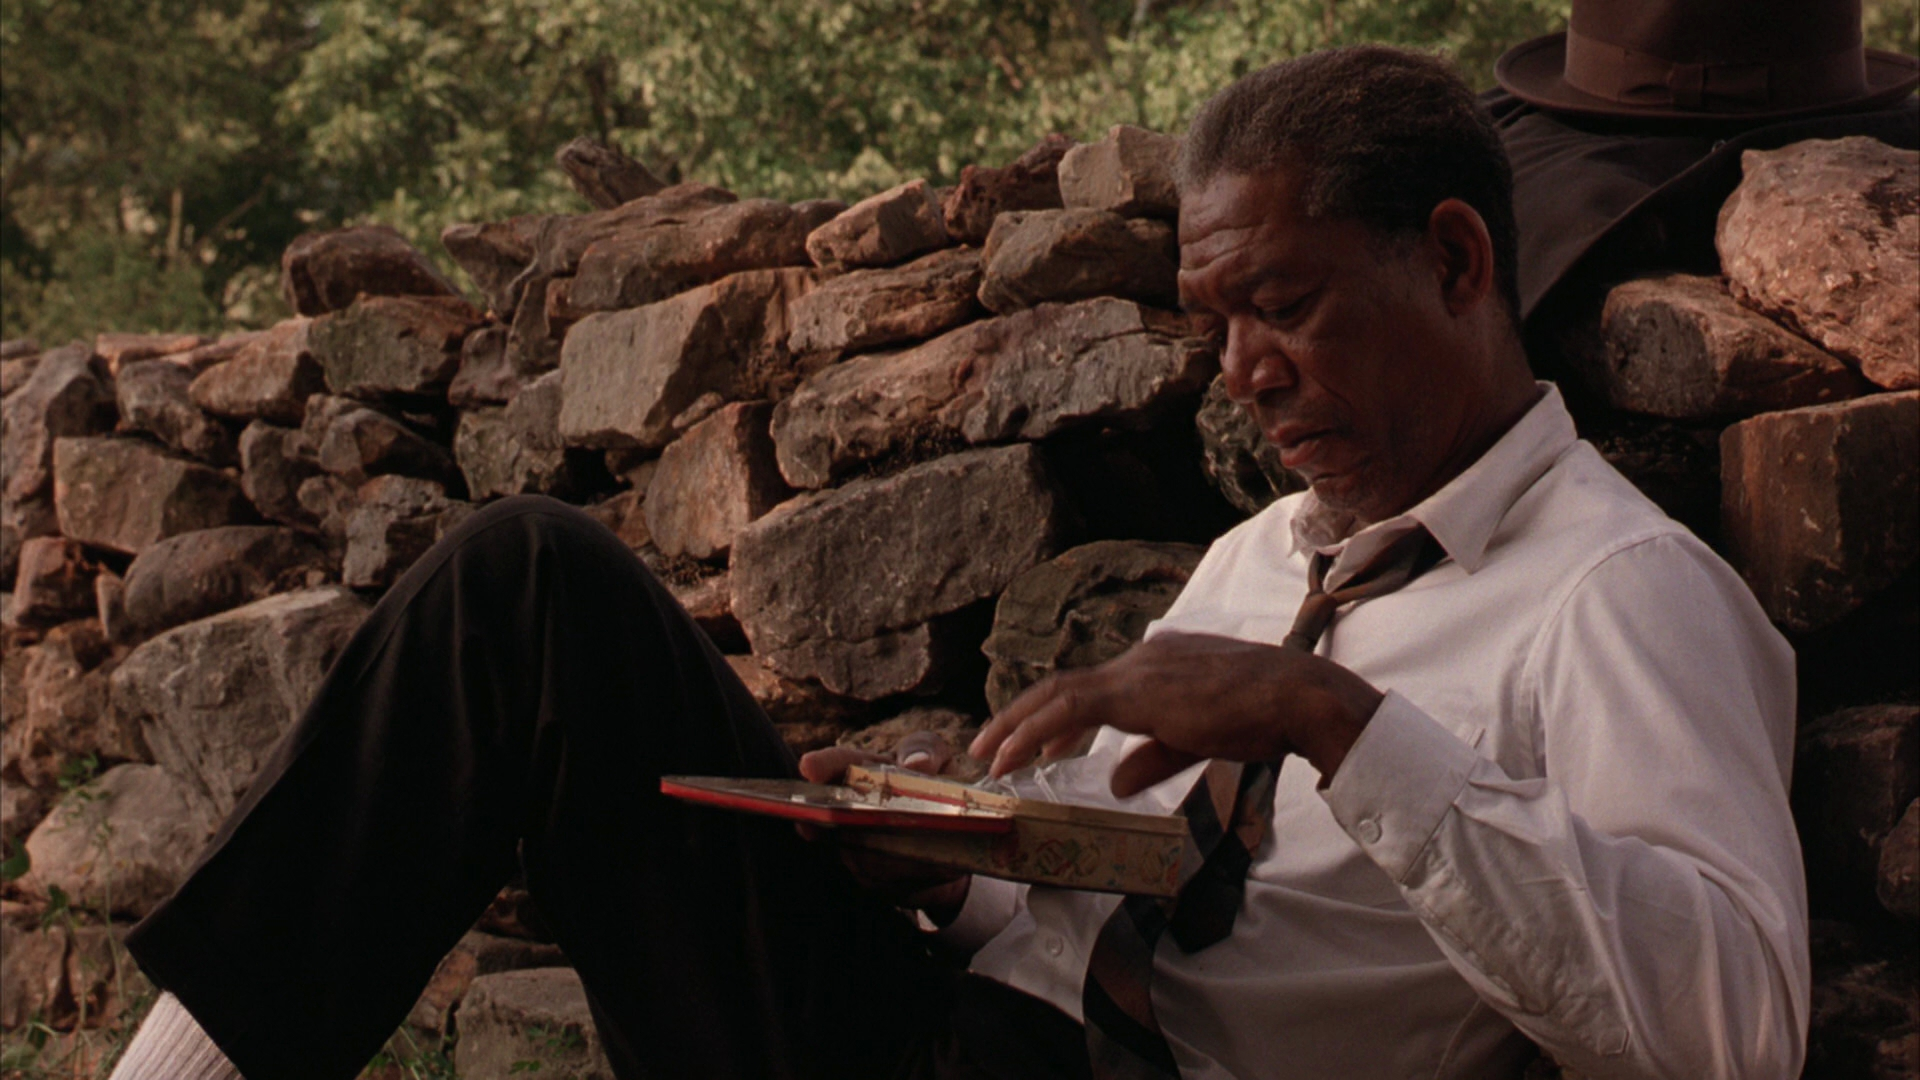 The Shawshank Redemption Wallpapers High Quality Download 1920x1080